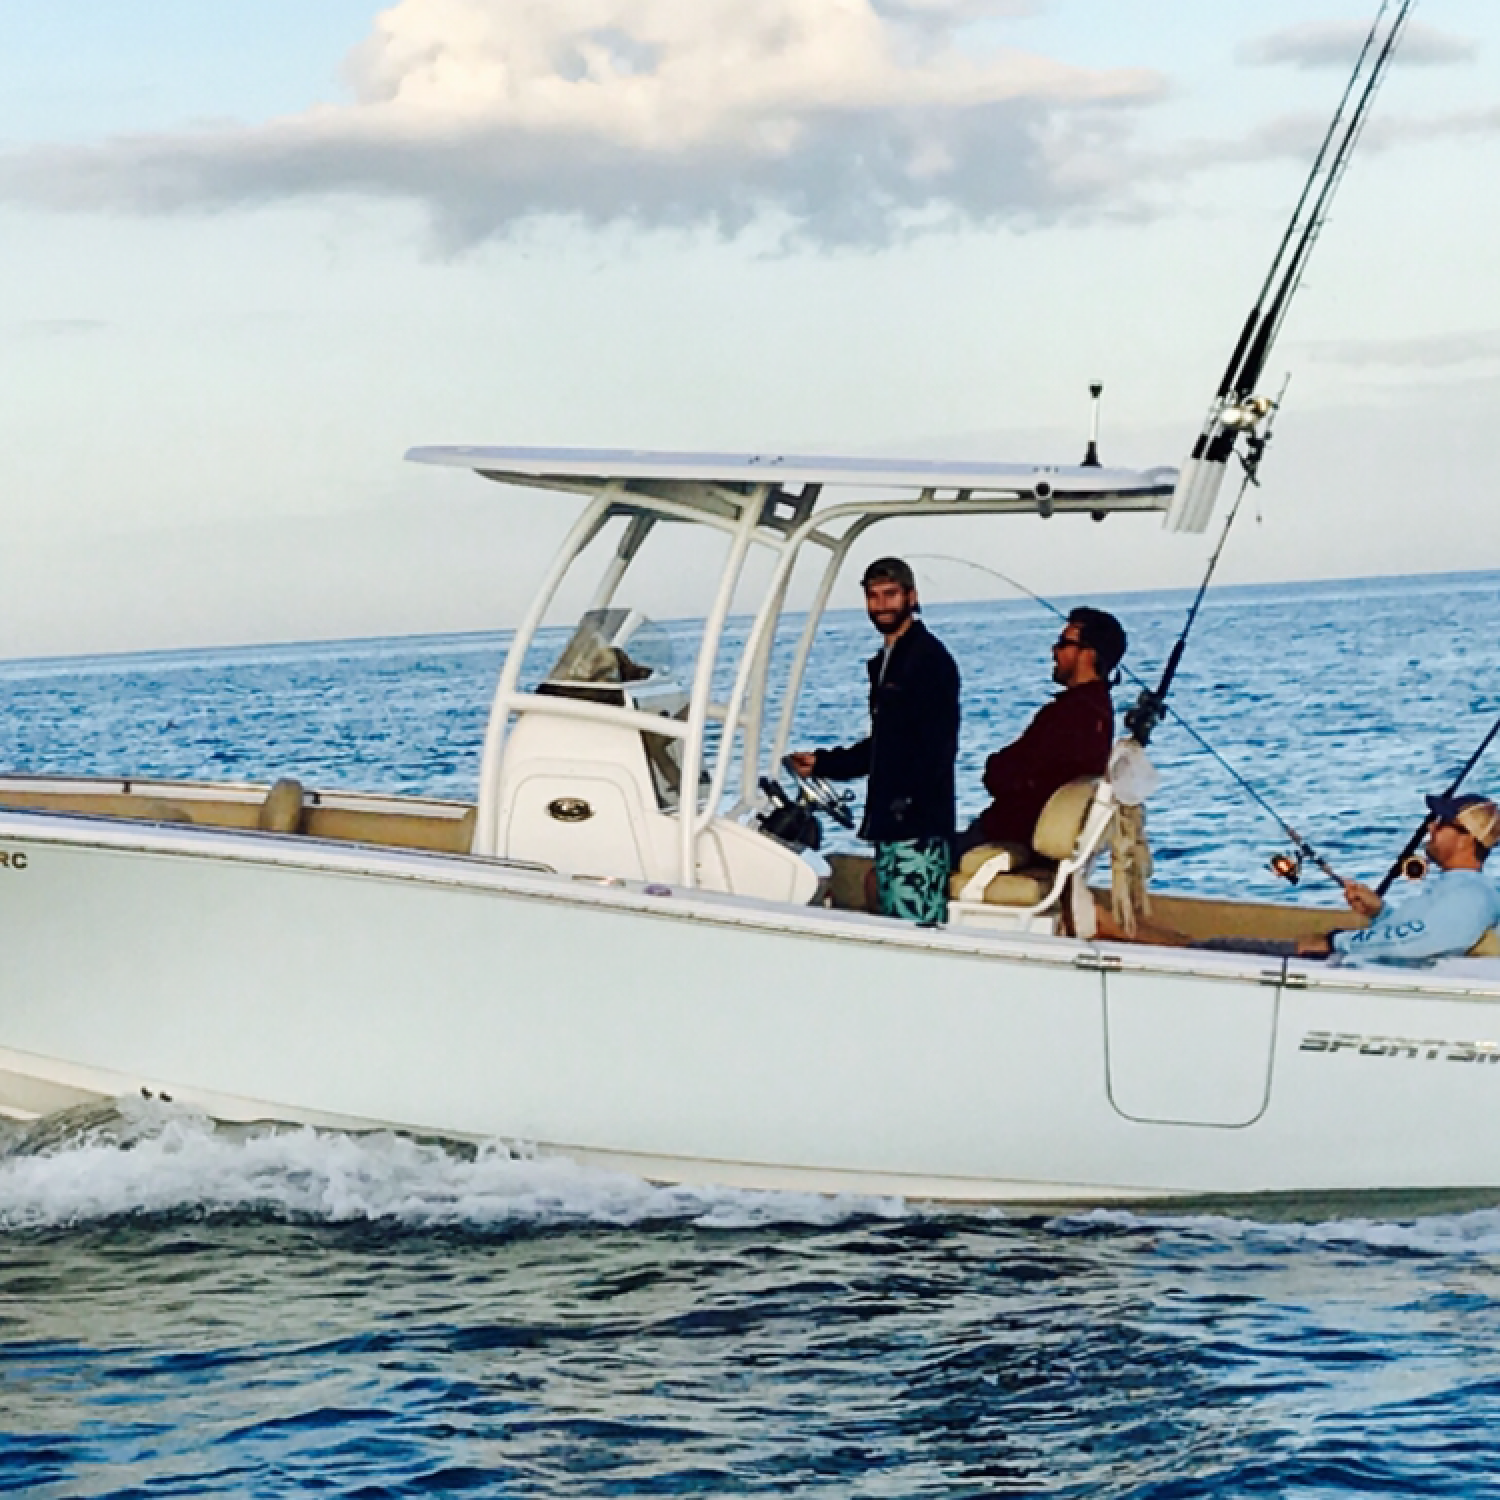 Title: Lost Reception - On board their Sportsman Heritage 251 Center Console - Location: , Florida. Participating in the Photo Contest #SportsmanJune2017